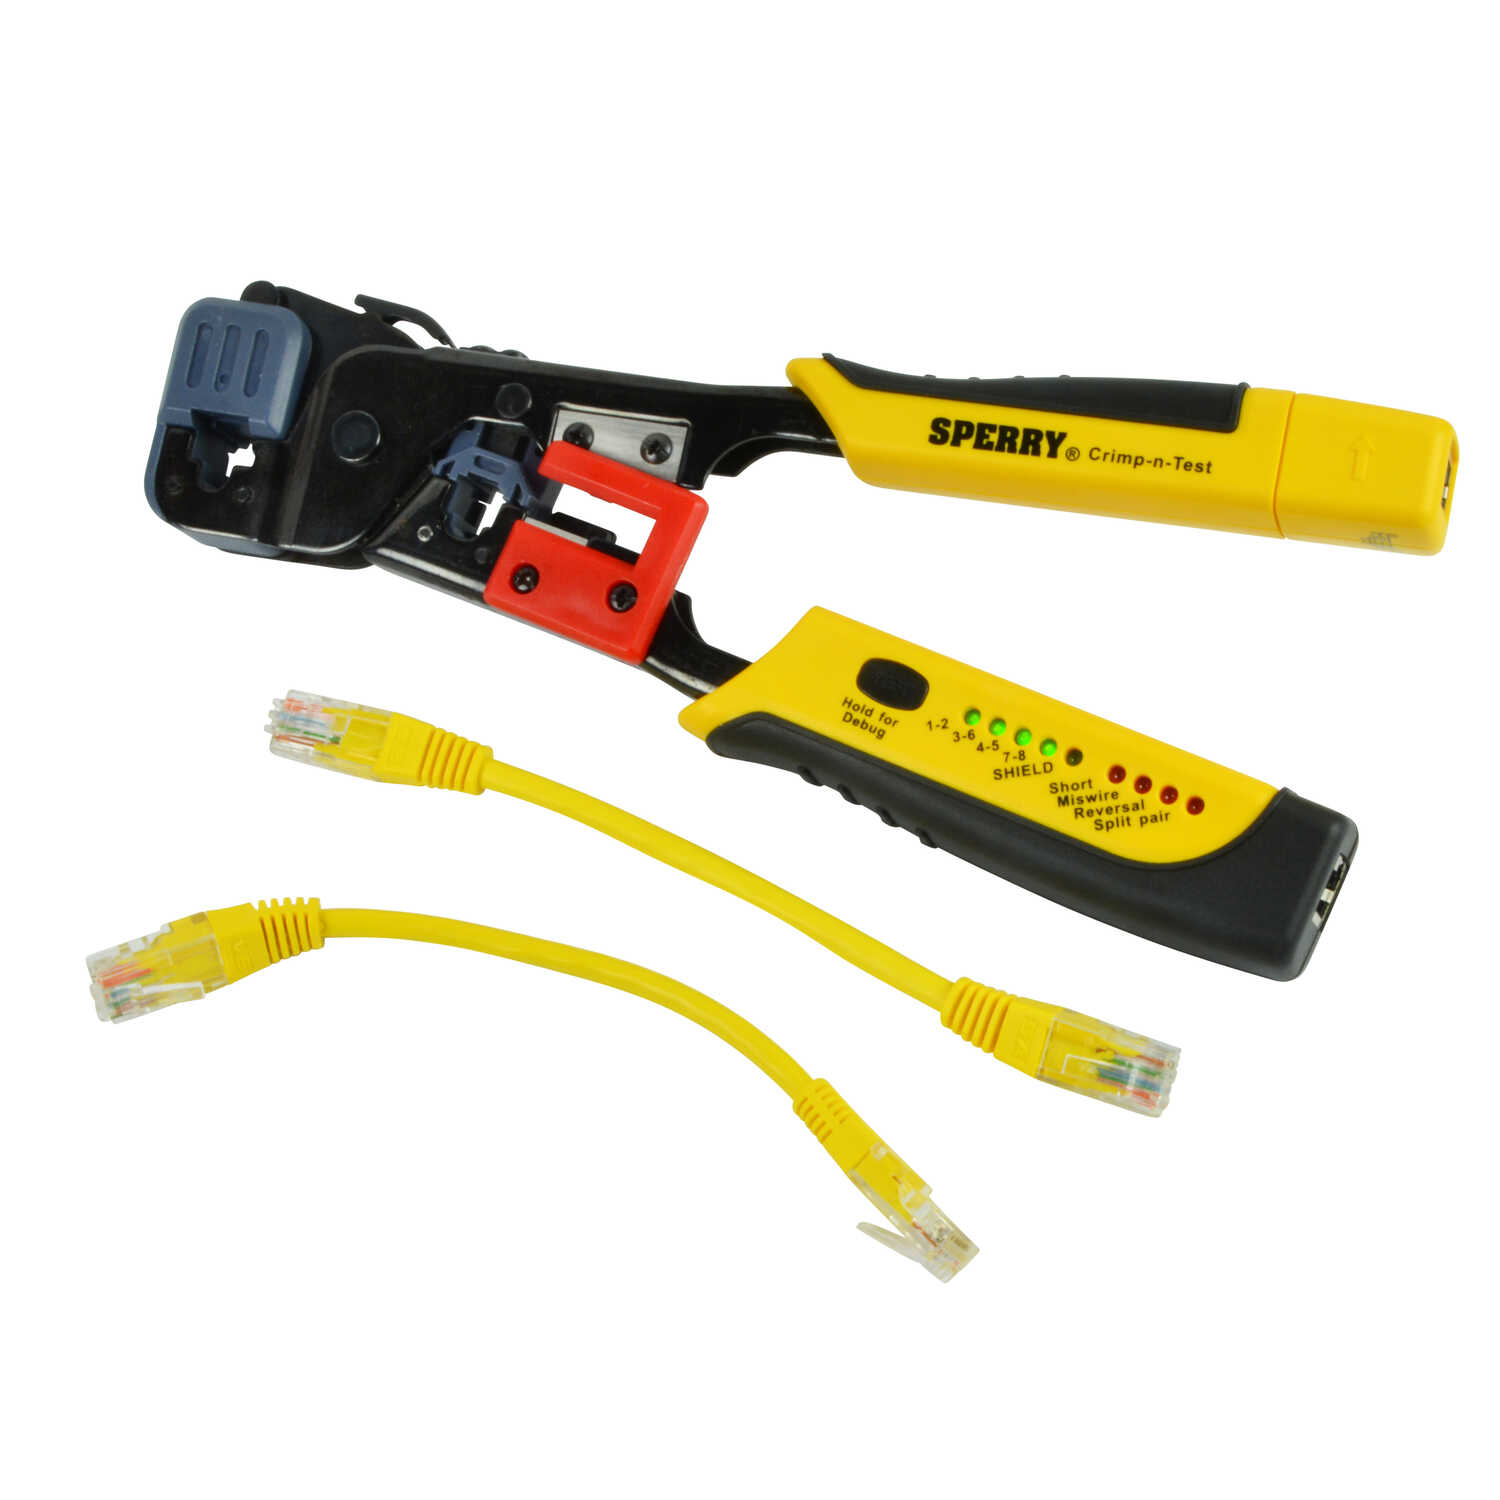 Sperry  Gardner Bender  8 in. Crimping Tool with Tester  Yellow  1 pk